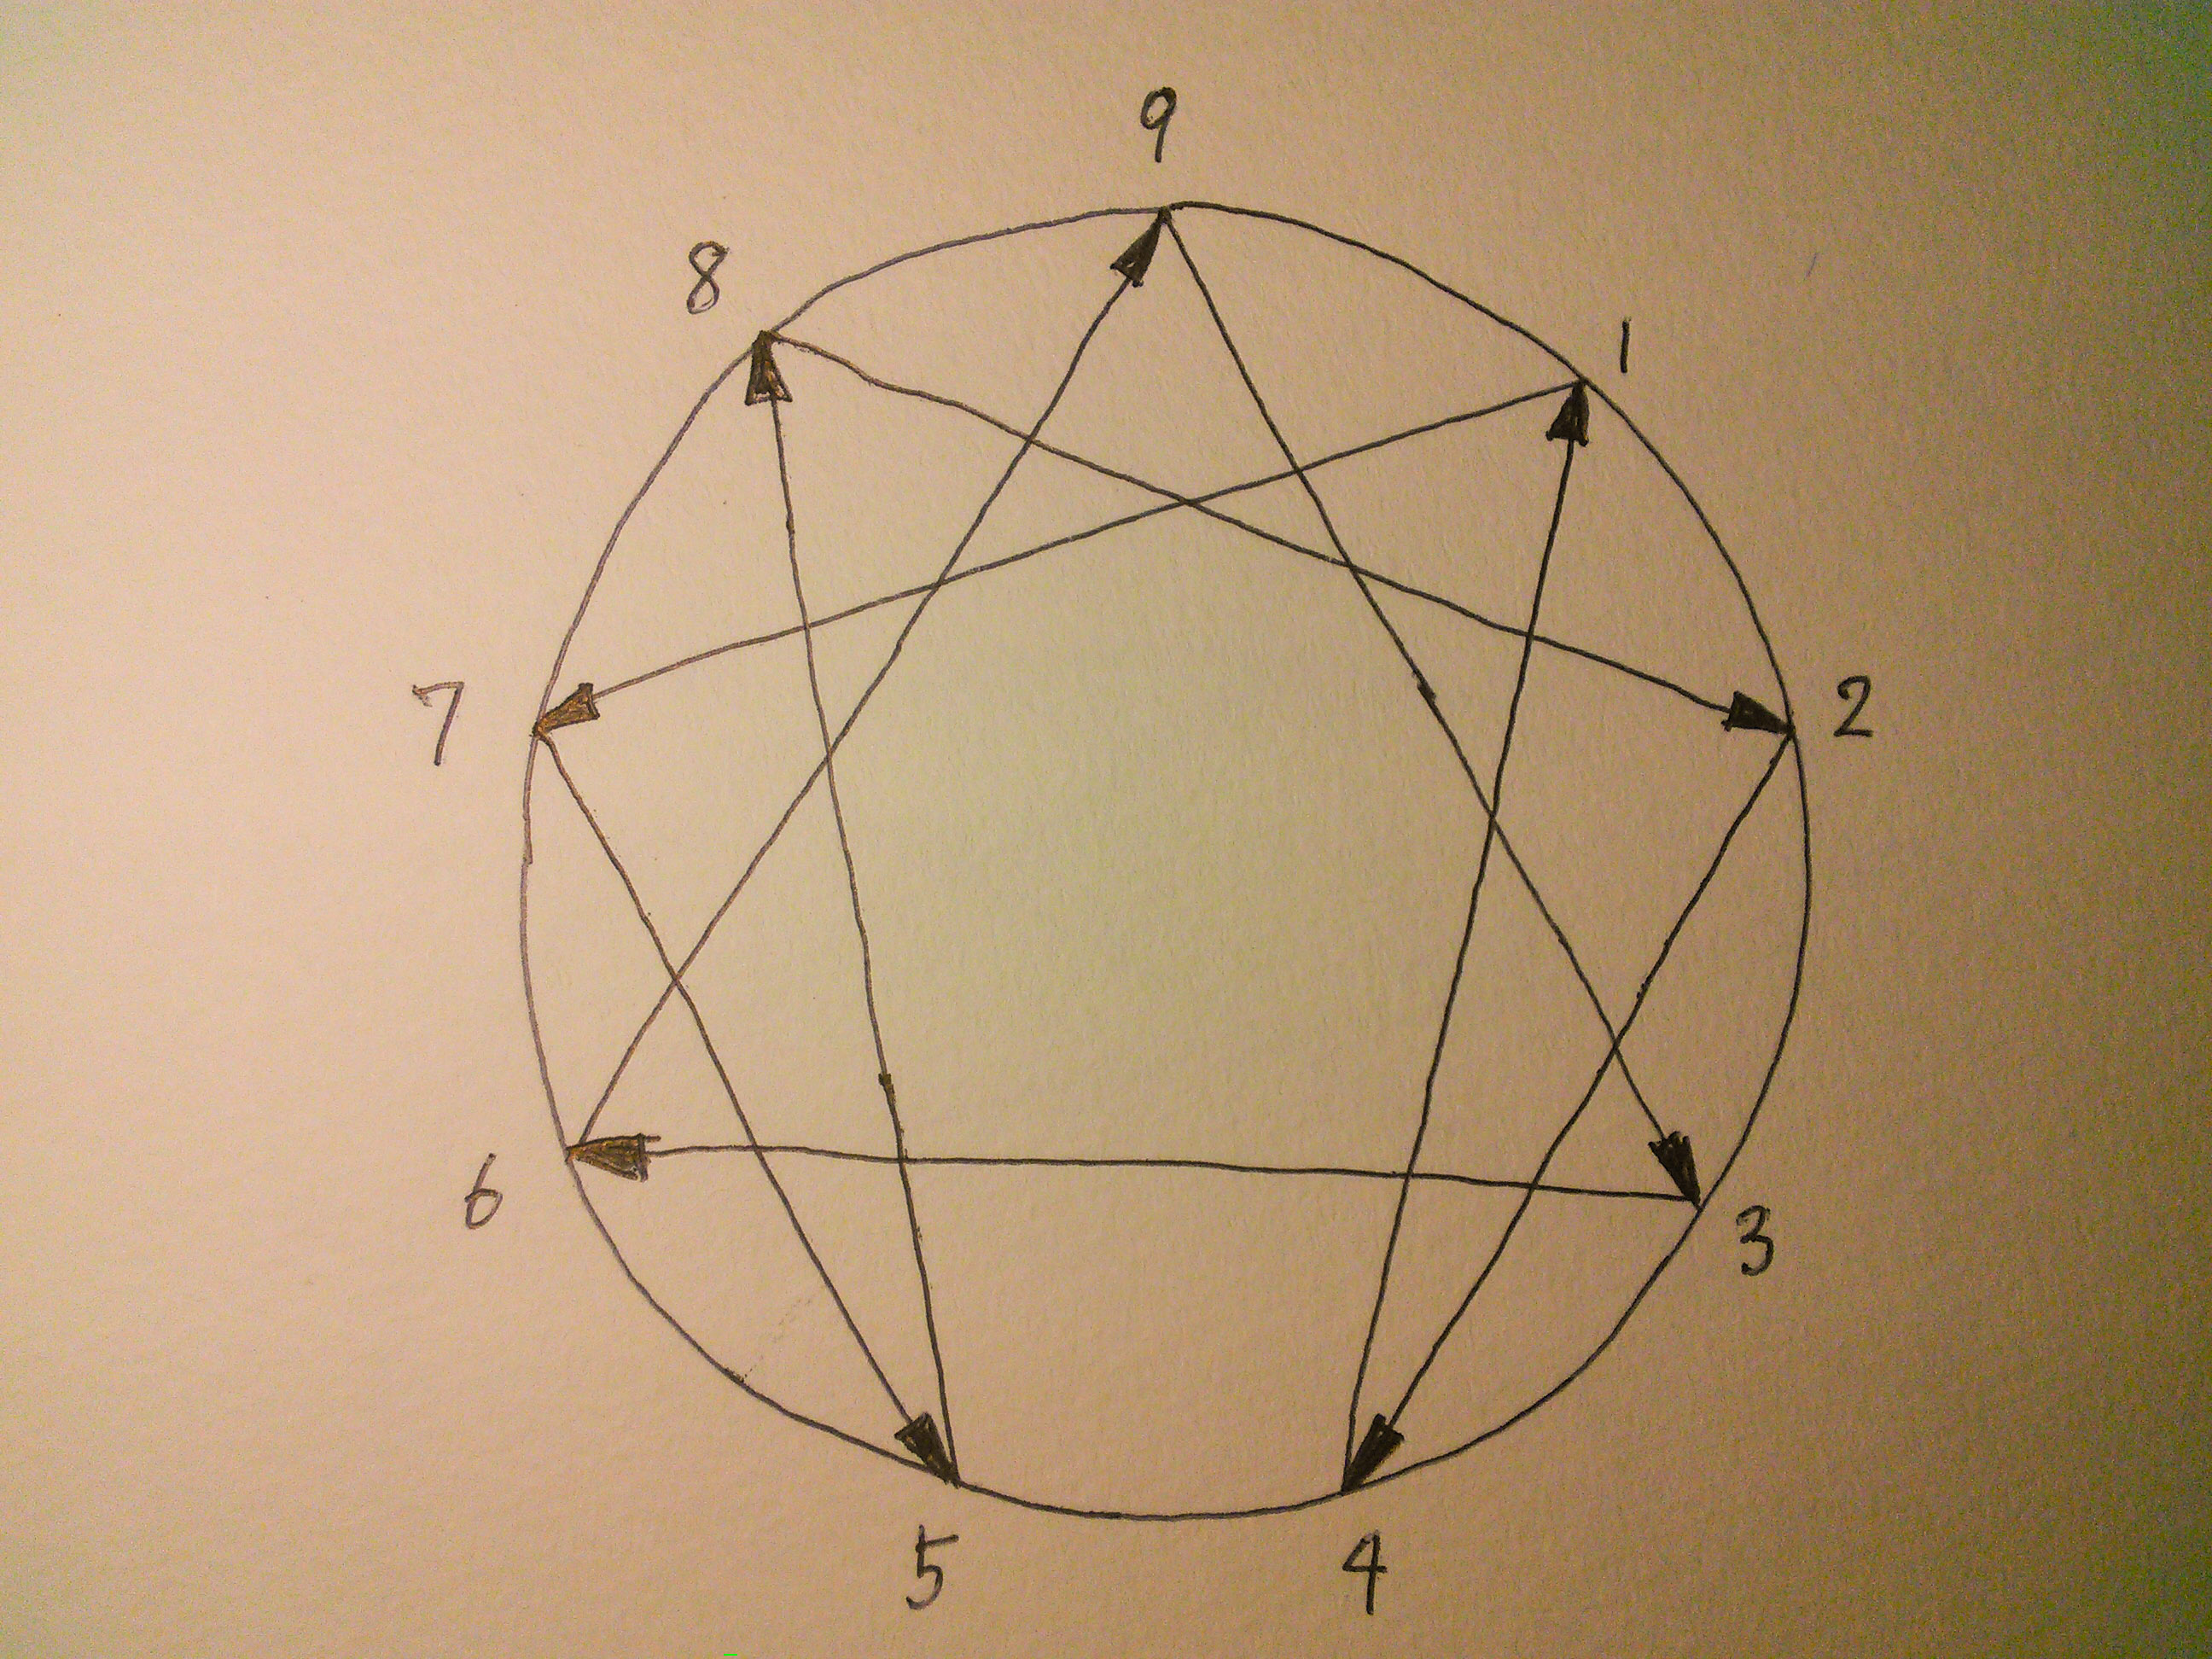 enneagram grouthing